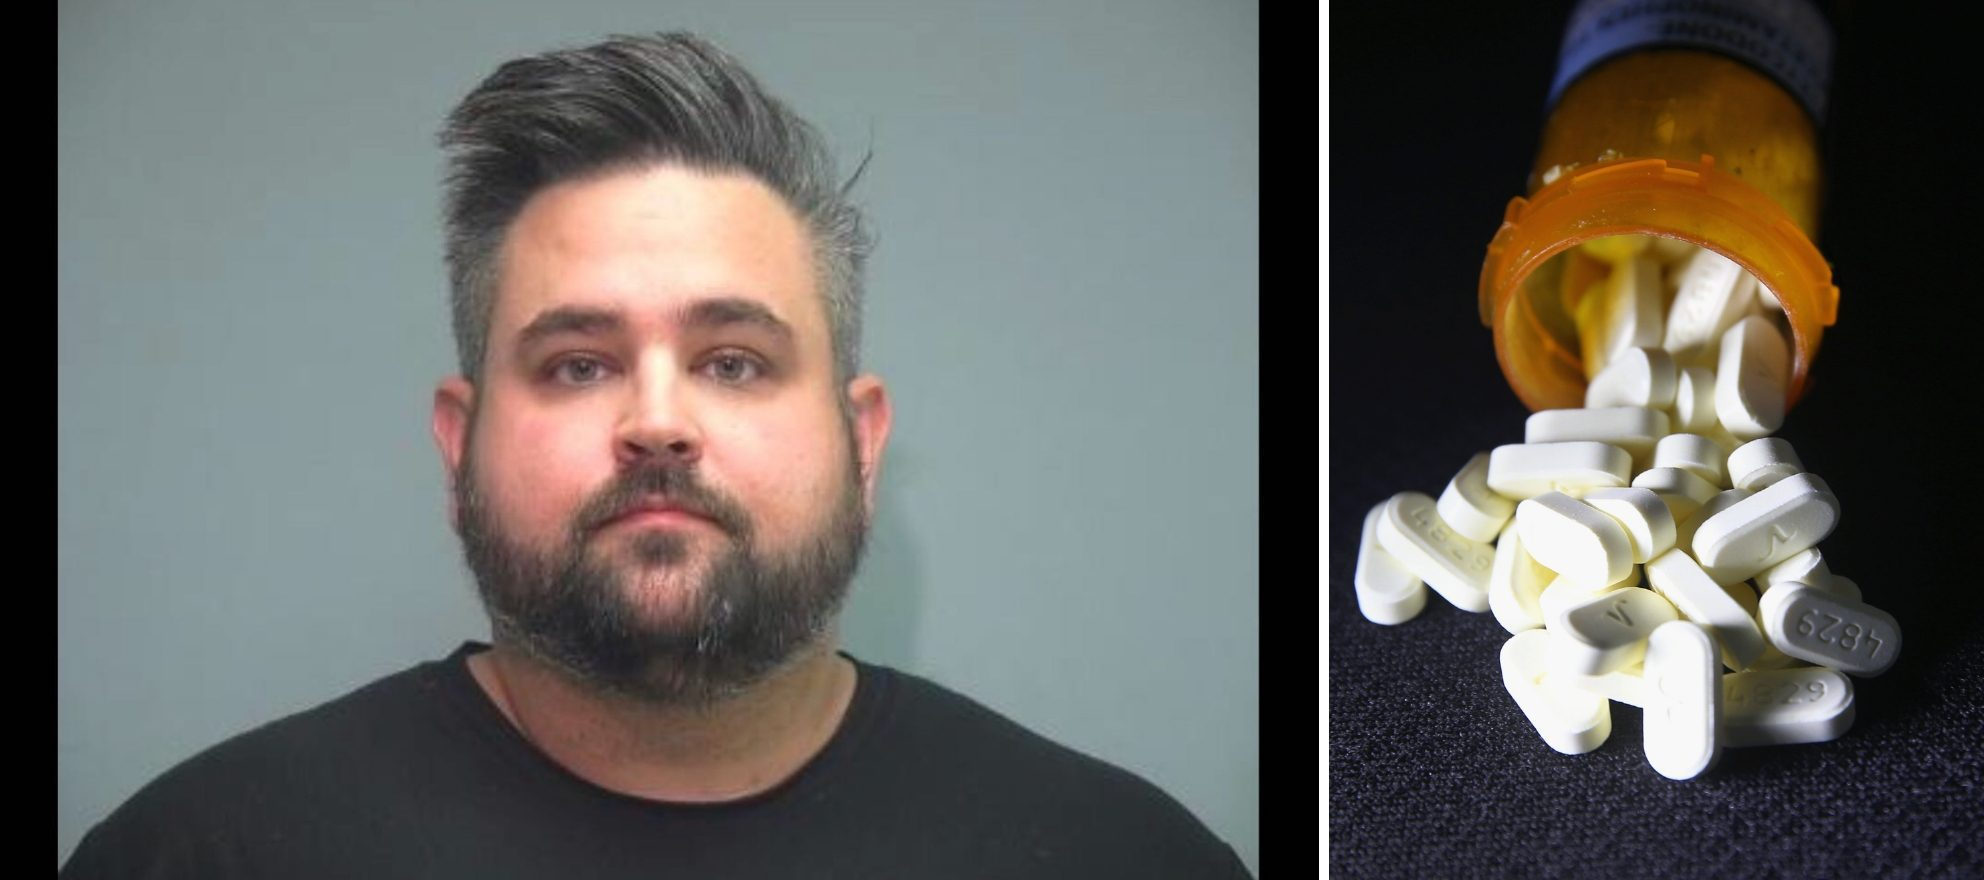 Agent charged with stealing pills from house he was showing